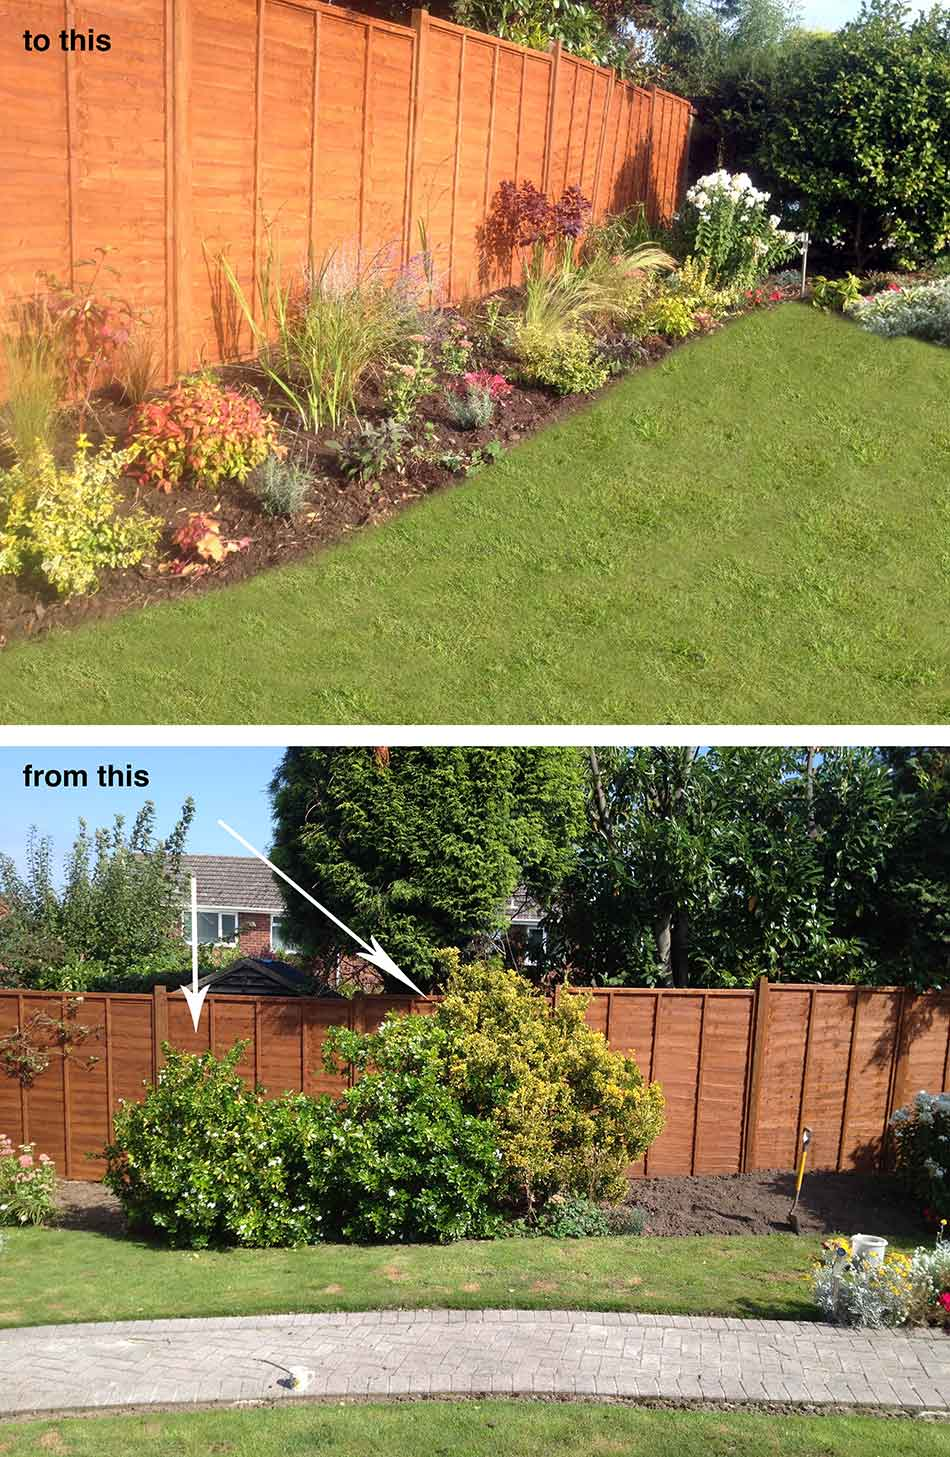 Garden ideas and design blog hornby garden designs Low maintenance garden border ideas